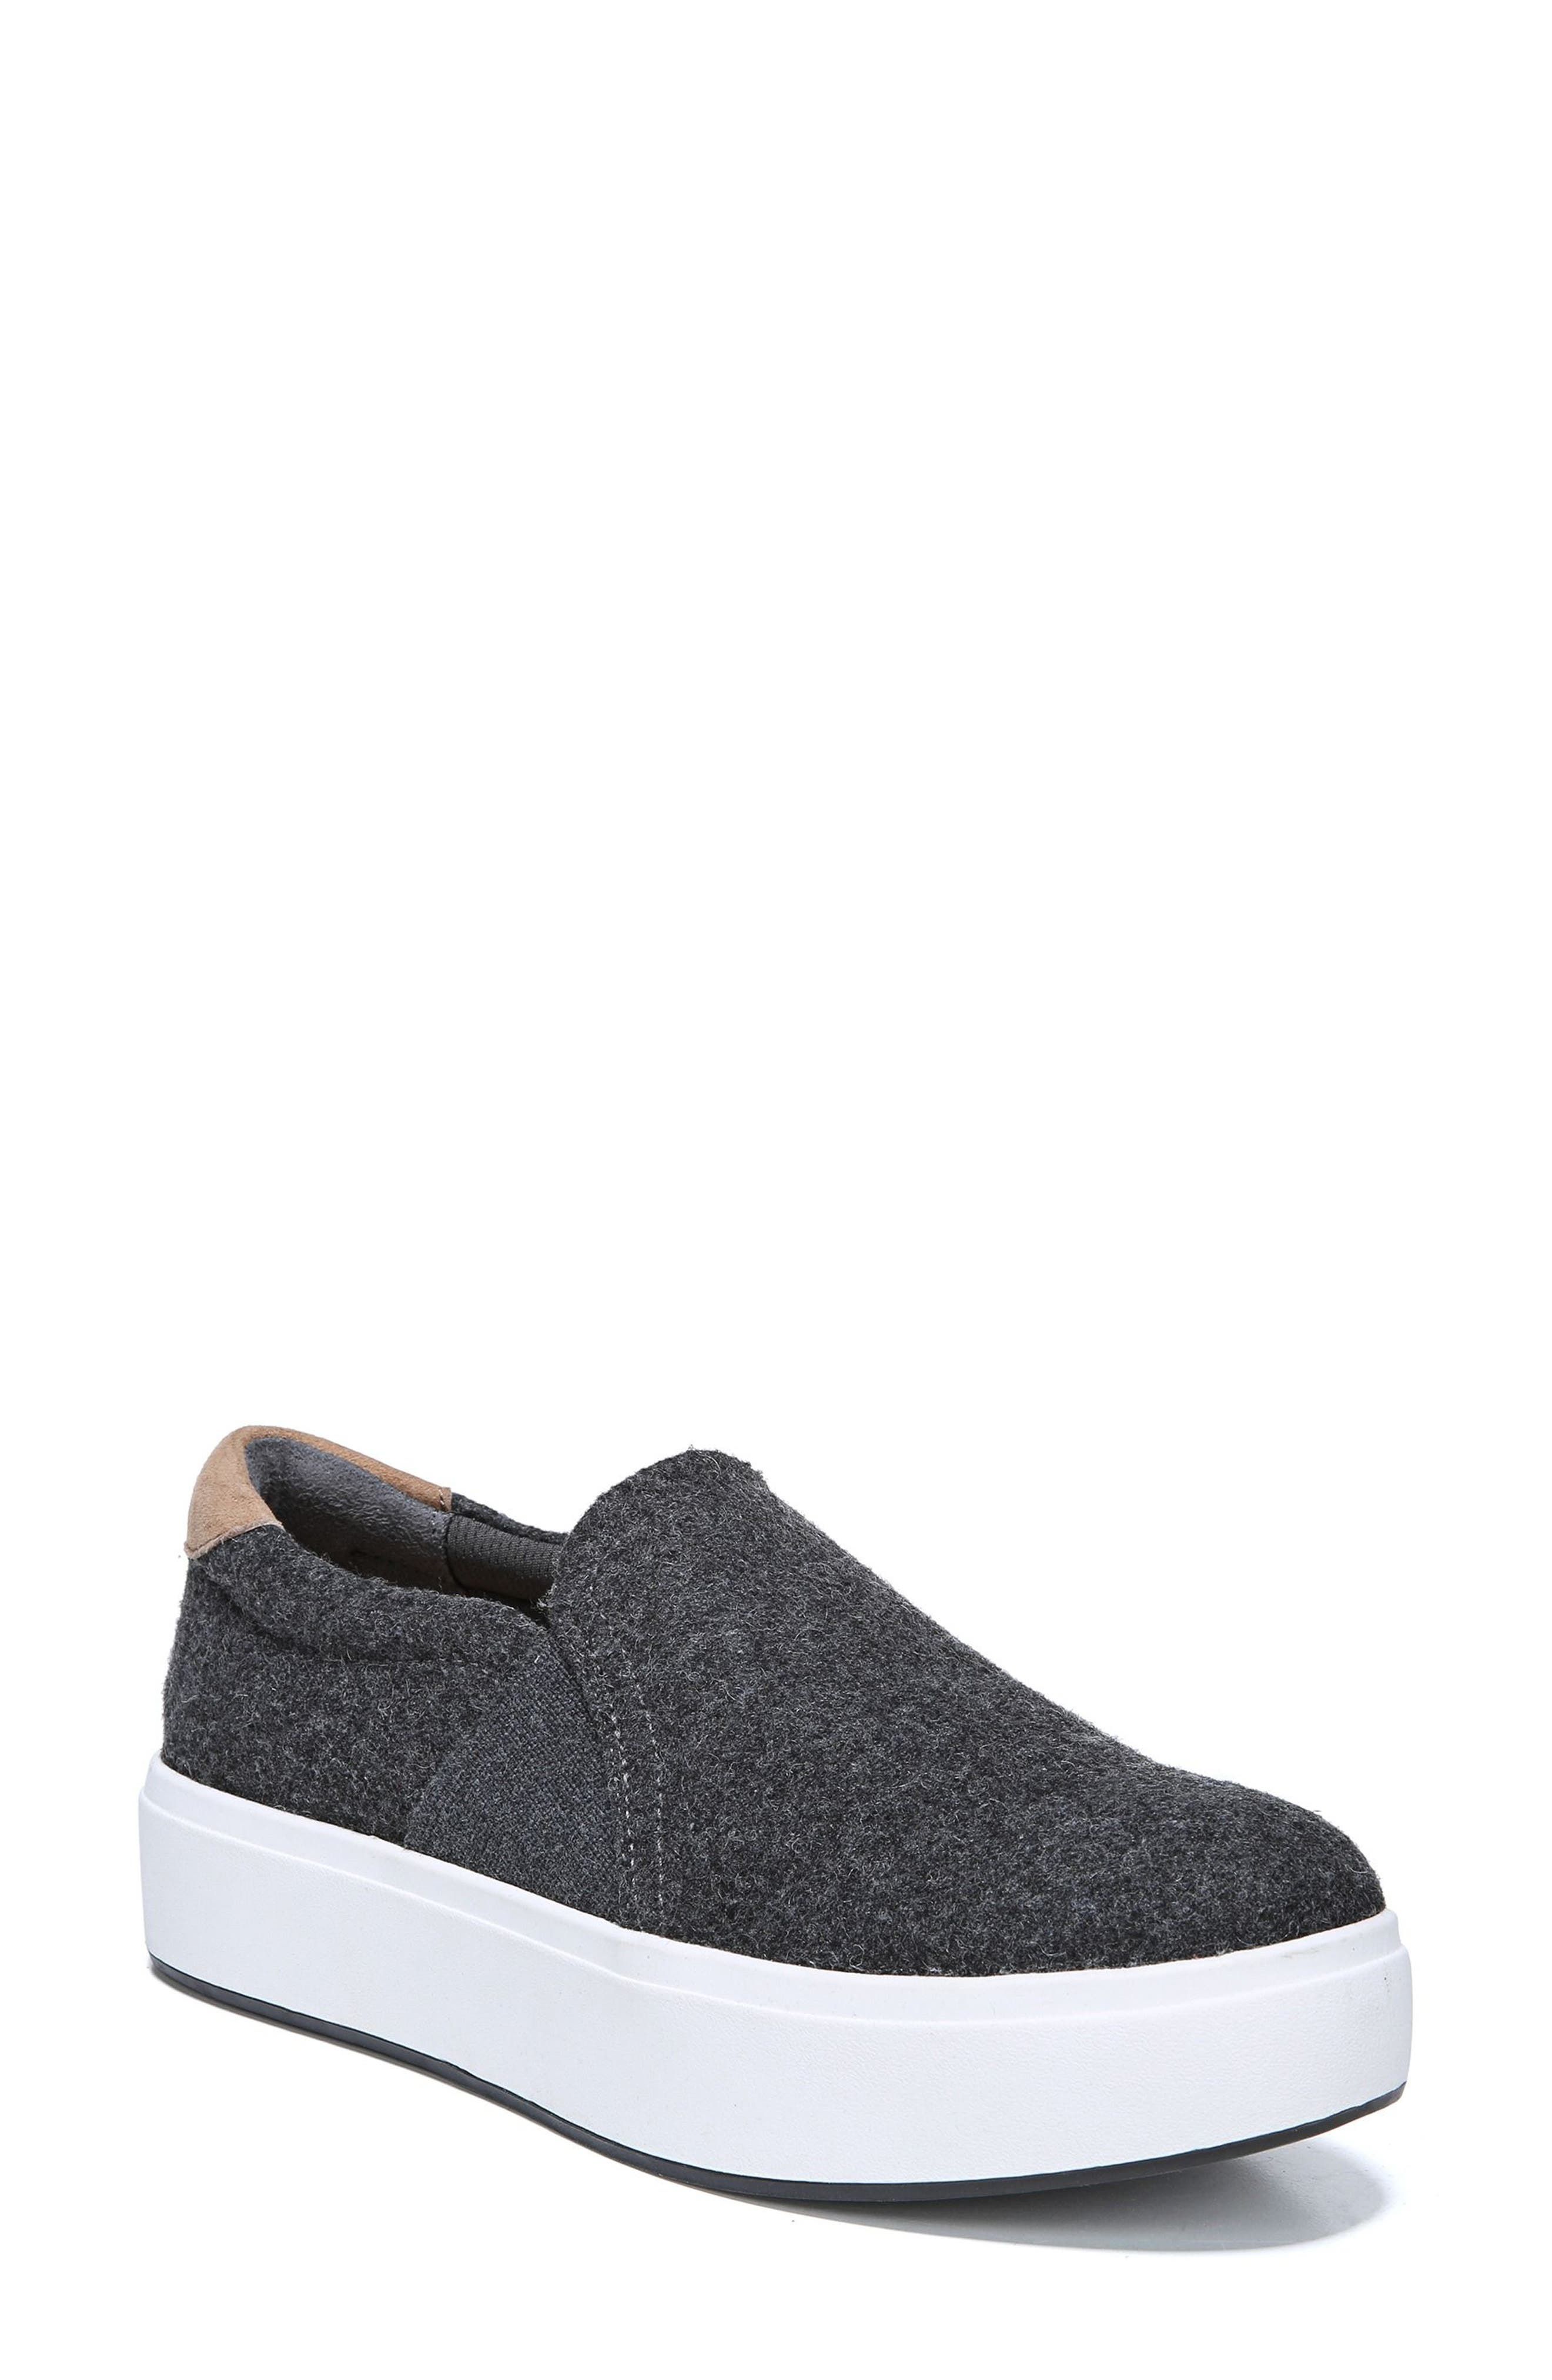 Abbot Slip-On Sneaker,                         Main,                         color, GREY FABRIC